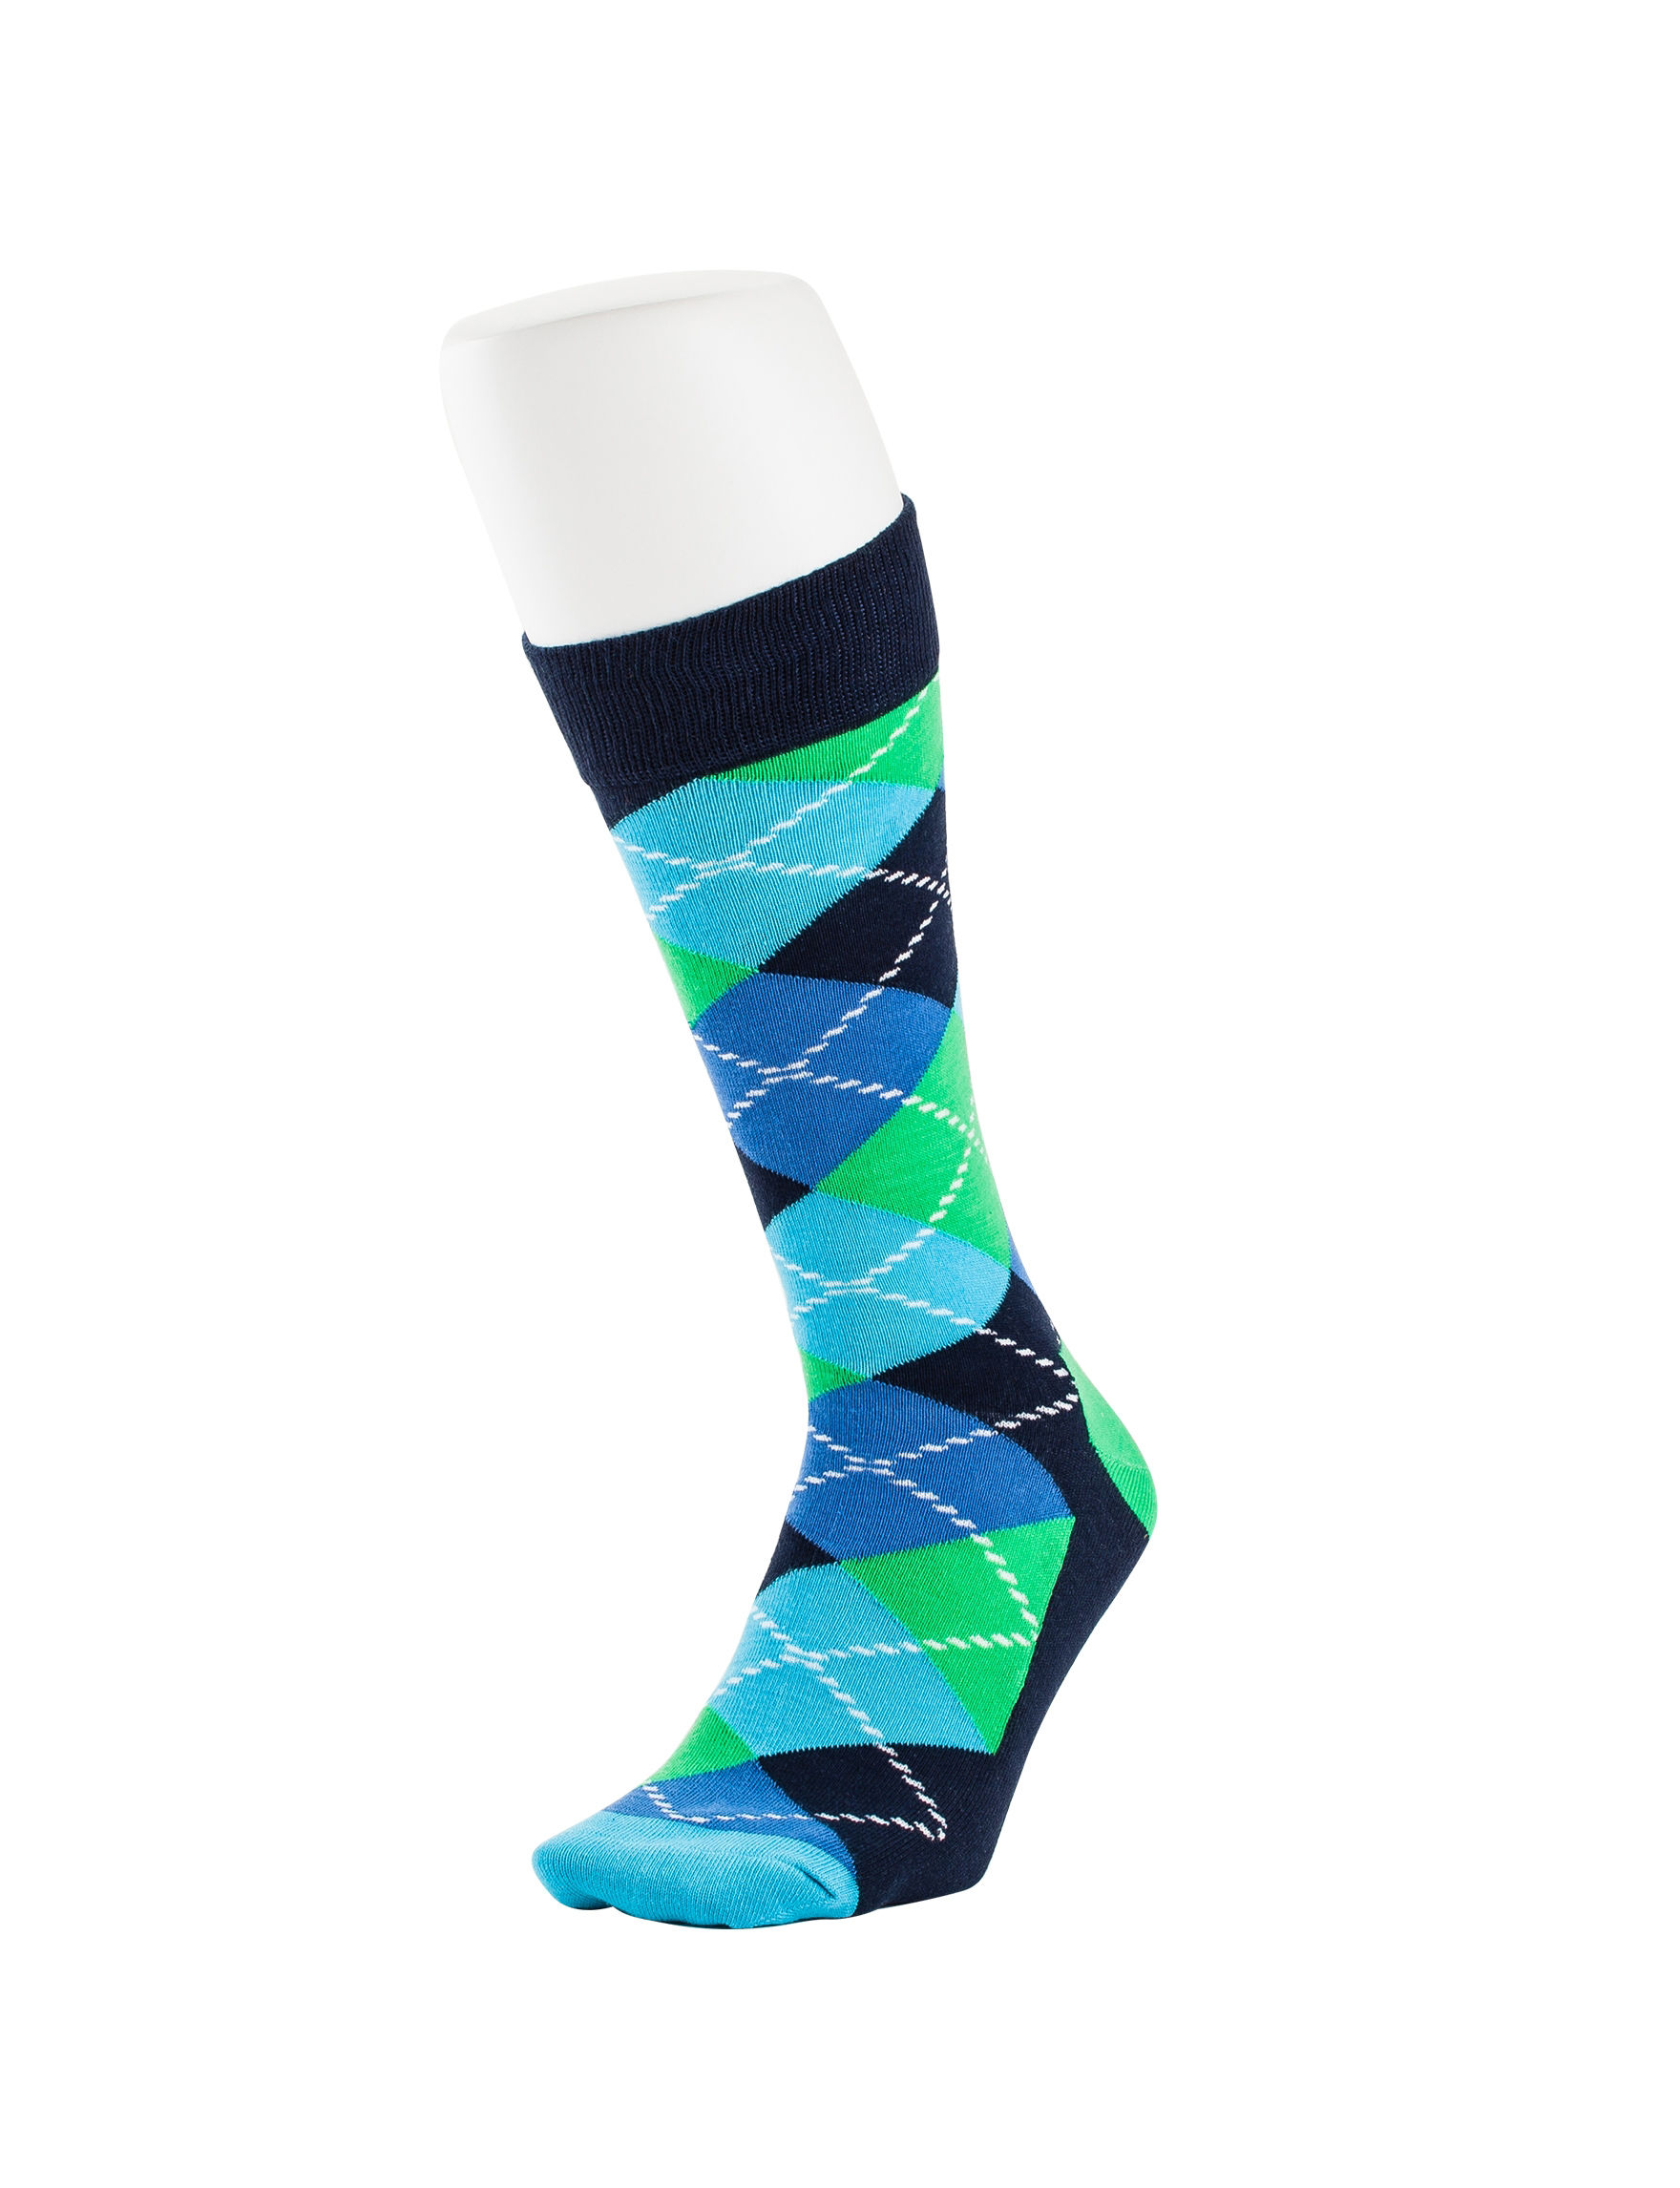 HS by Happy Socks Blue / Green Socks